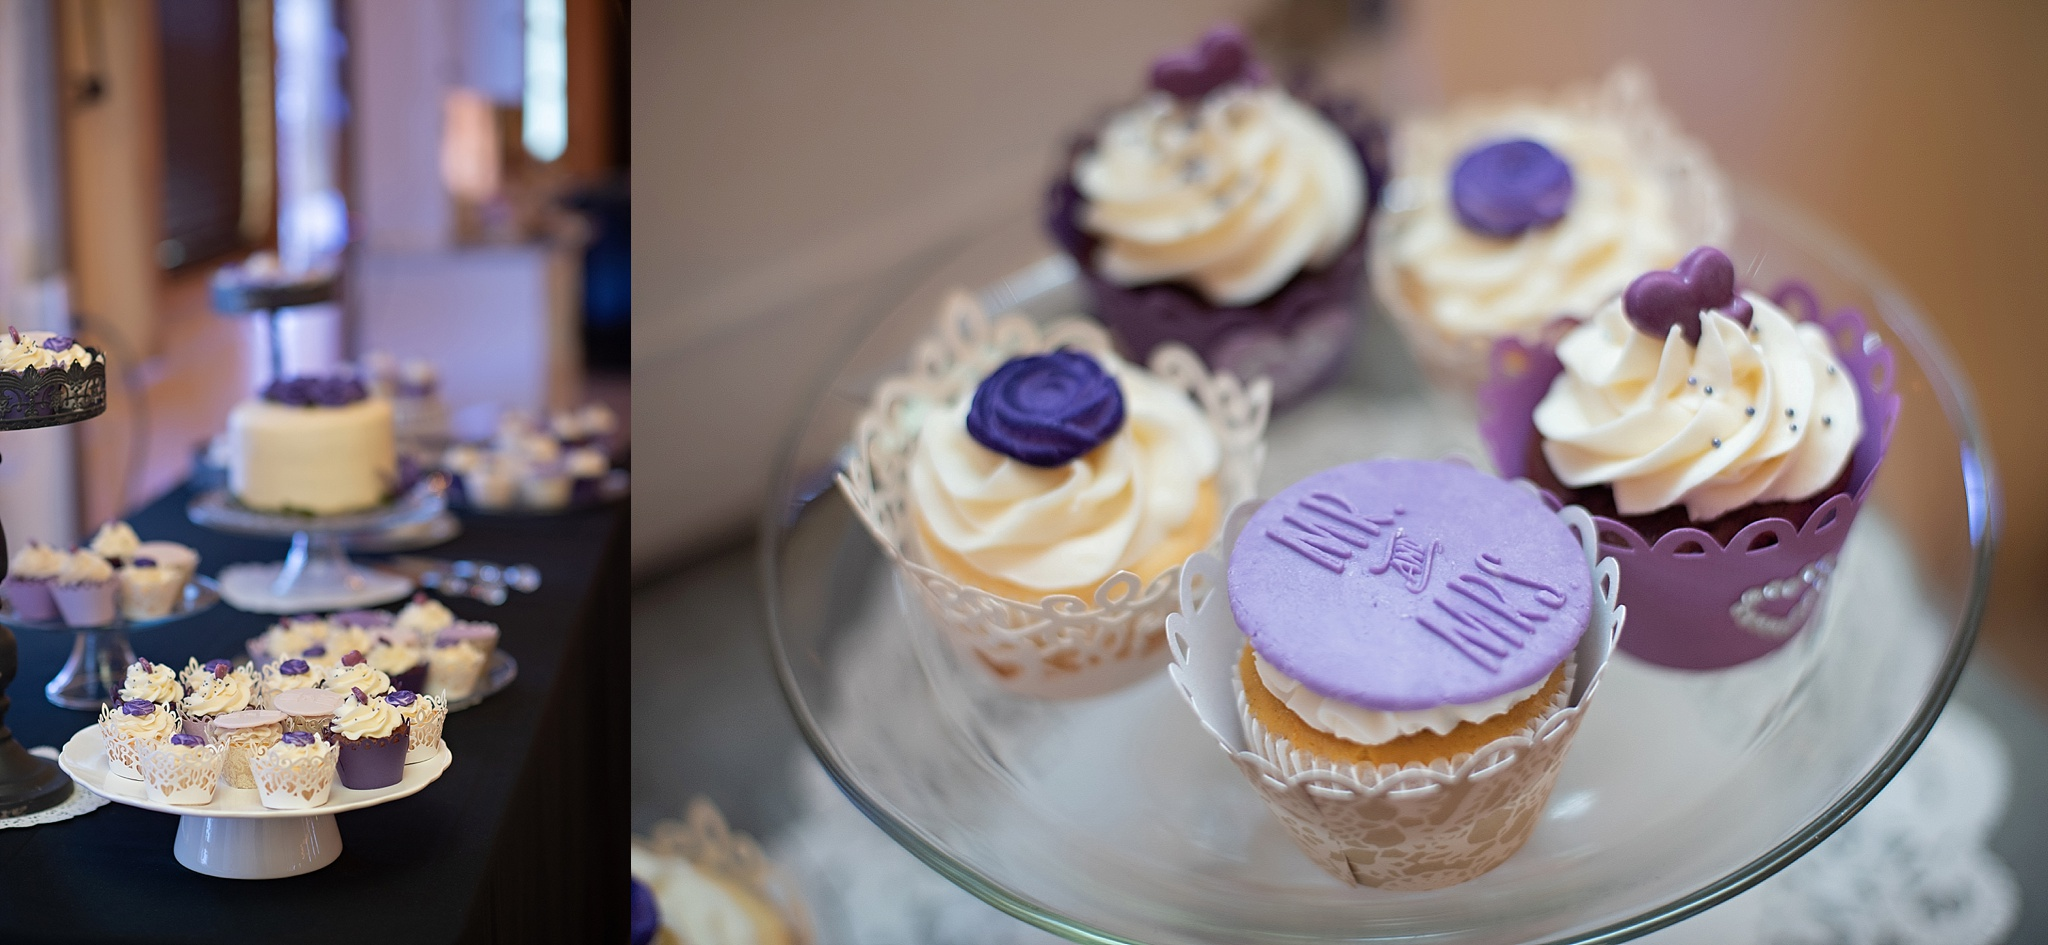 purple accent wedding cake and cupcakes